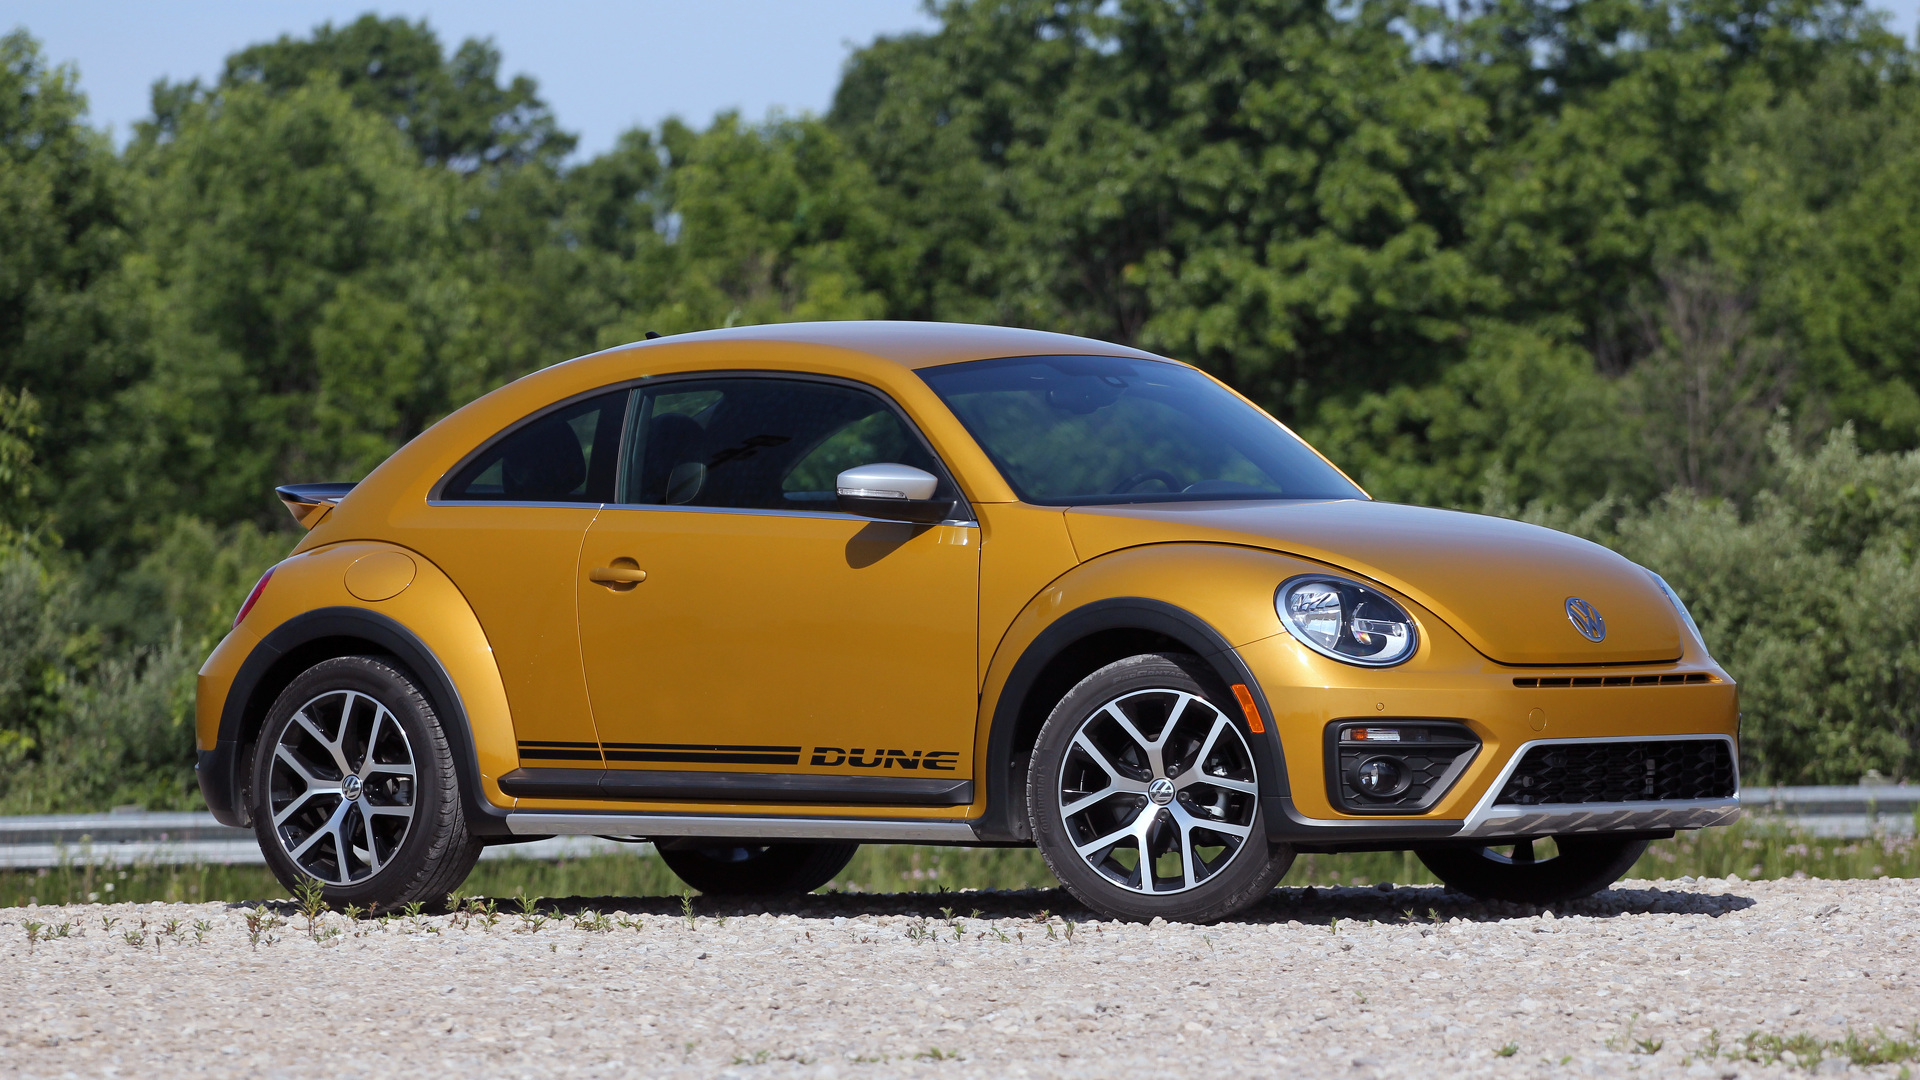 2016 vw beetle dune review a fun look that 39 s all facade. Black Bedroom Furniture Sets. Home Design Ideas